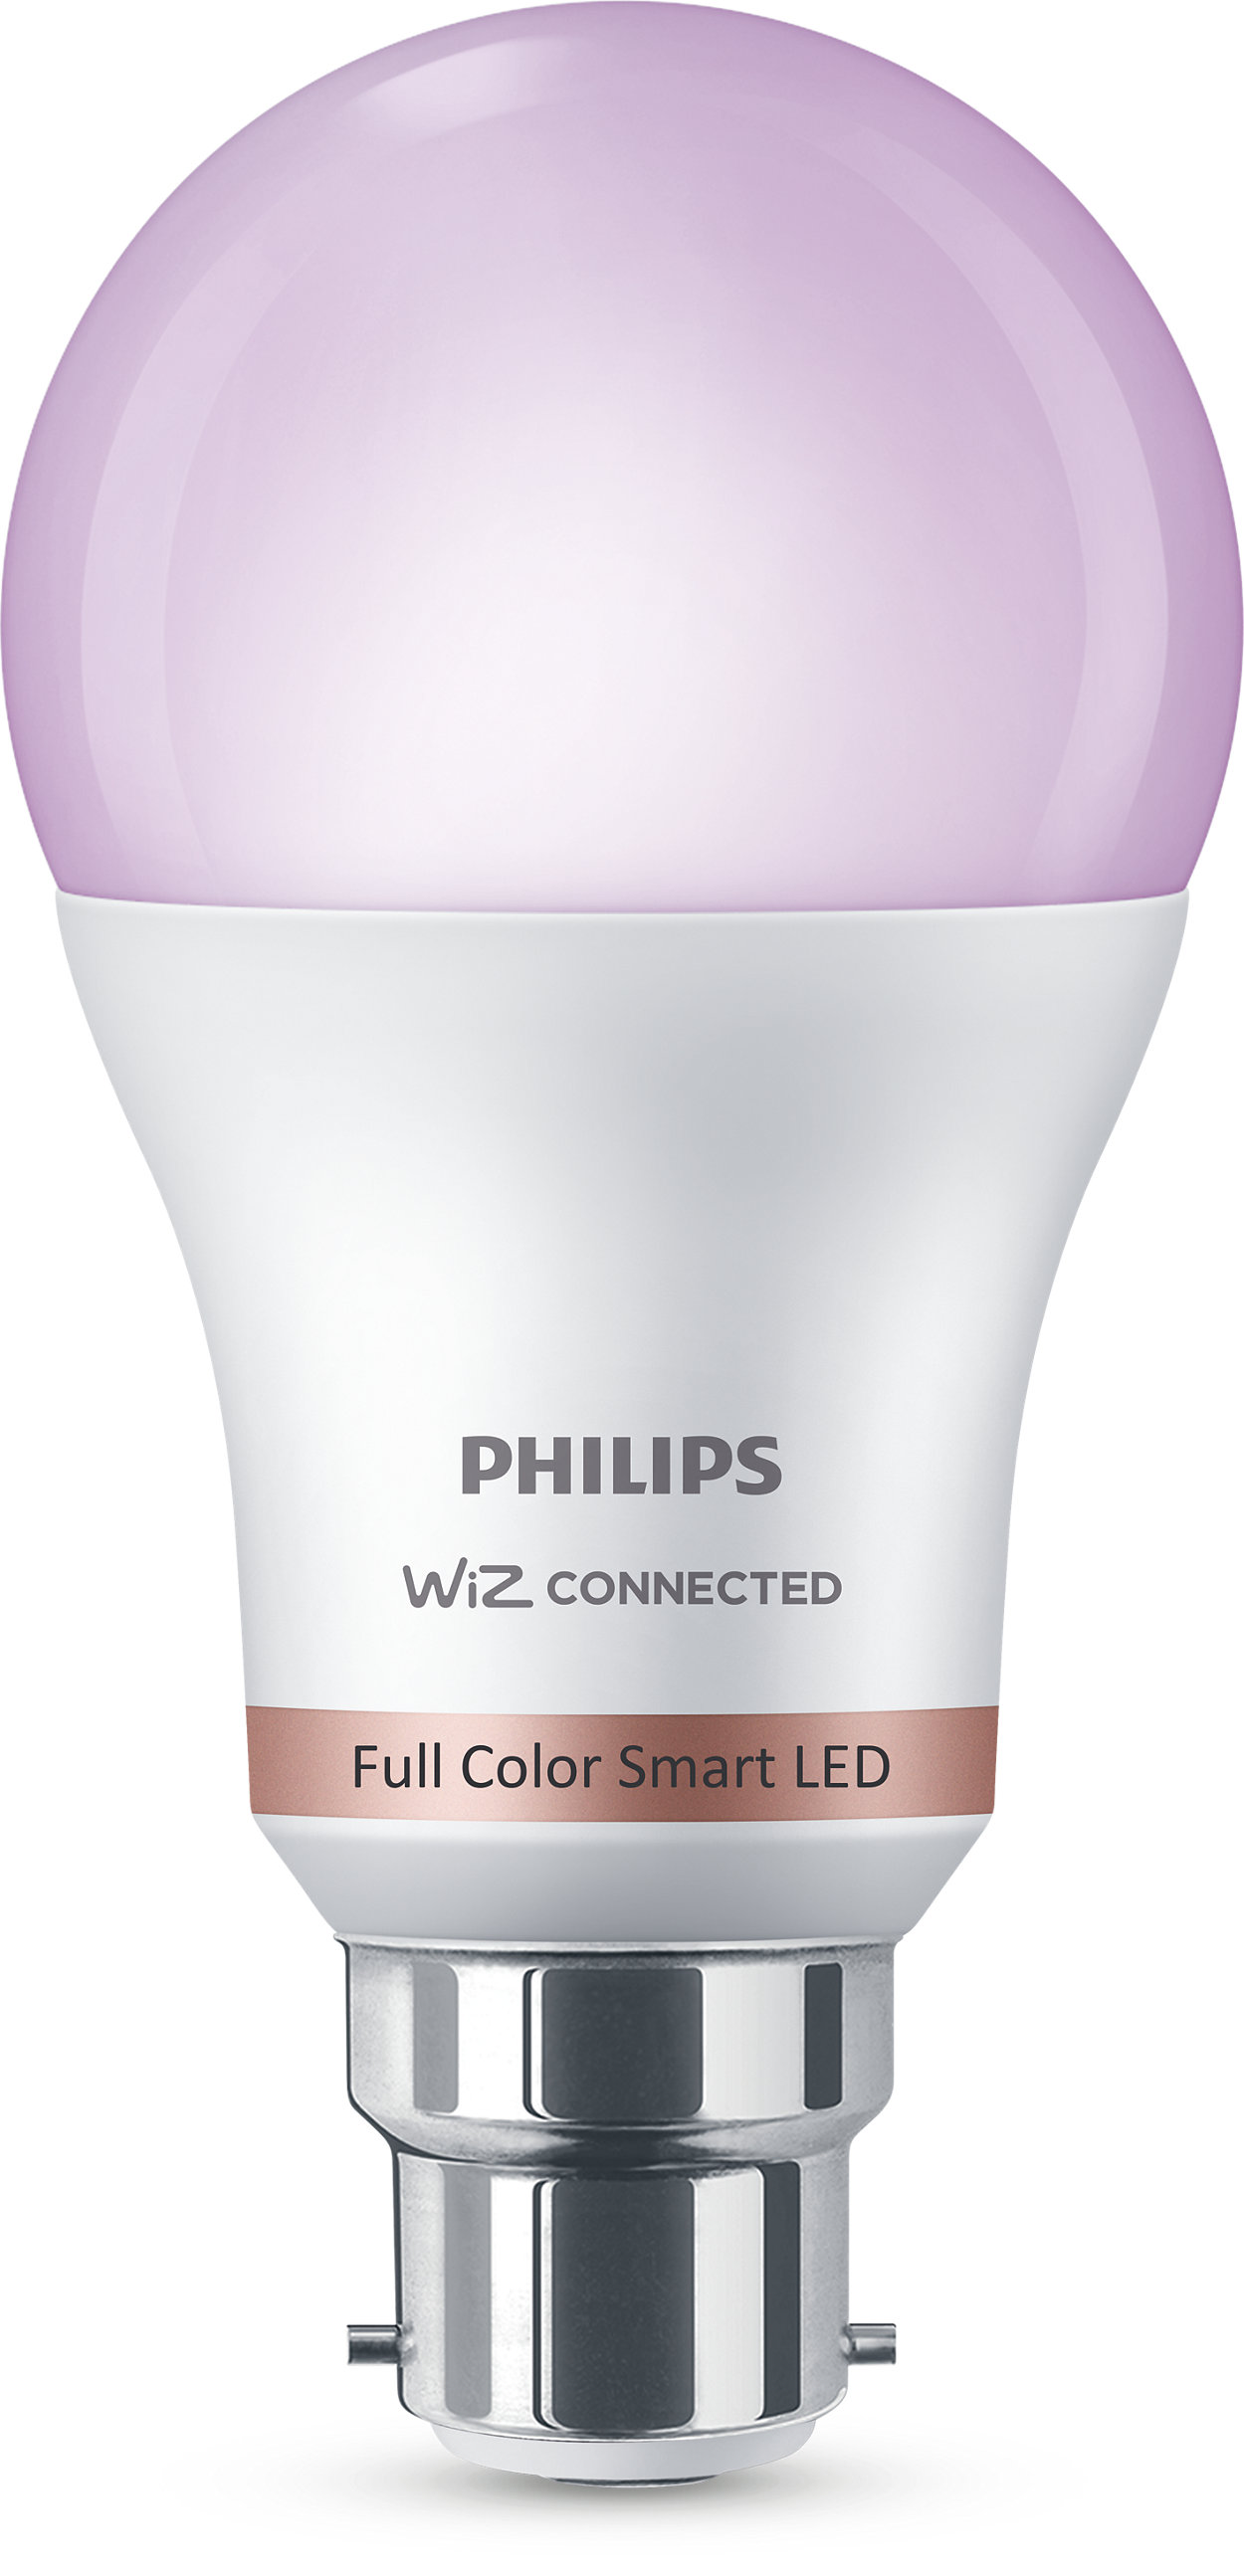 Colorful light that matches your mood